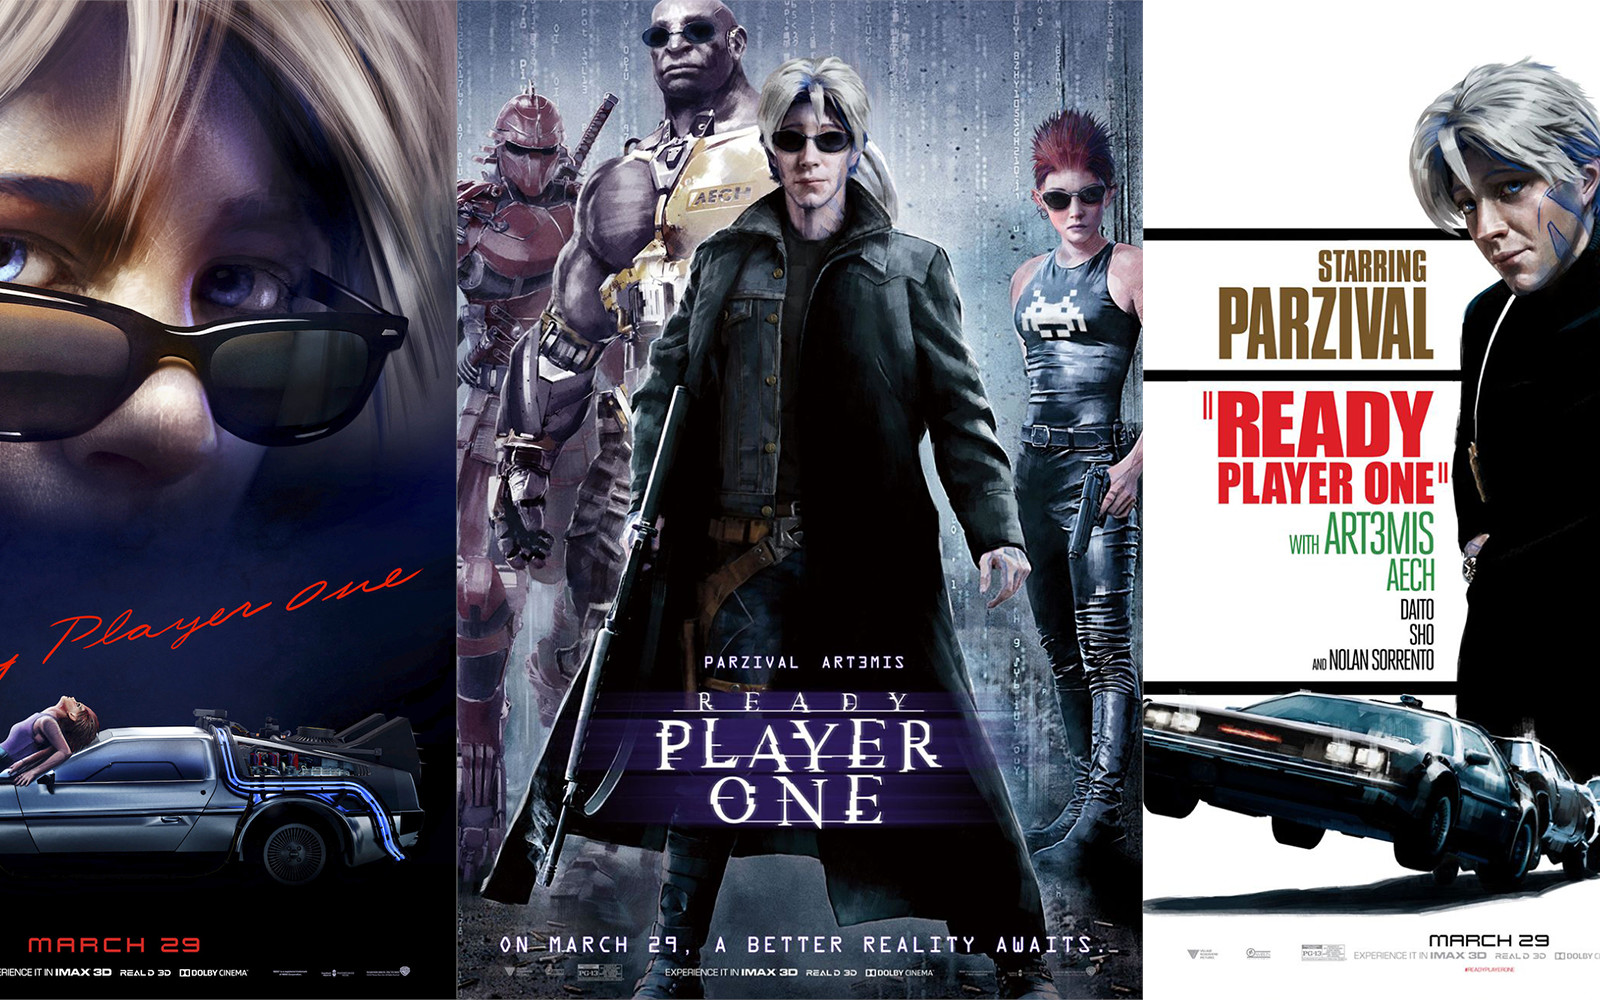 Warner Bros. Releases A Variety Of Ready Player One Posters Referencing Famous Movies